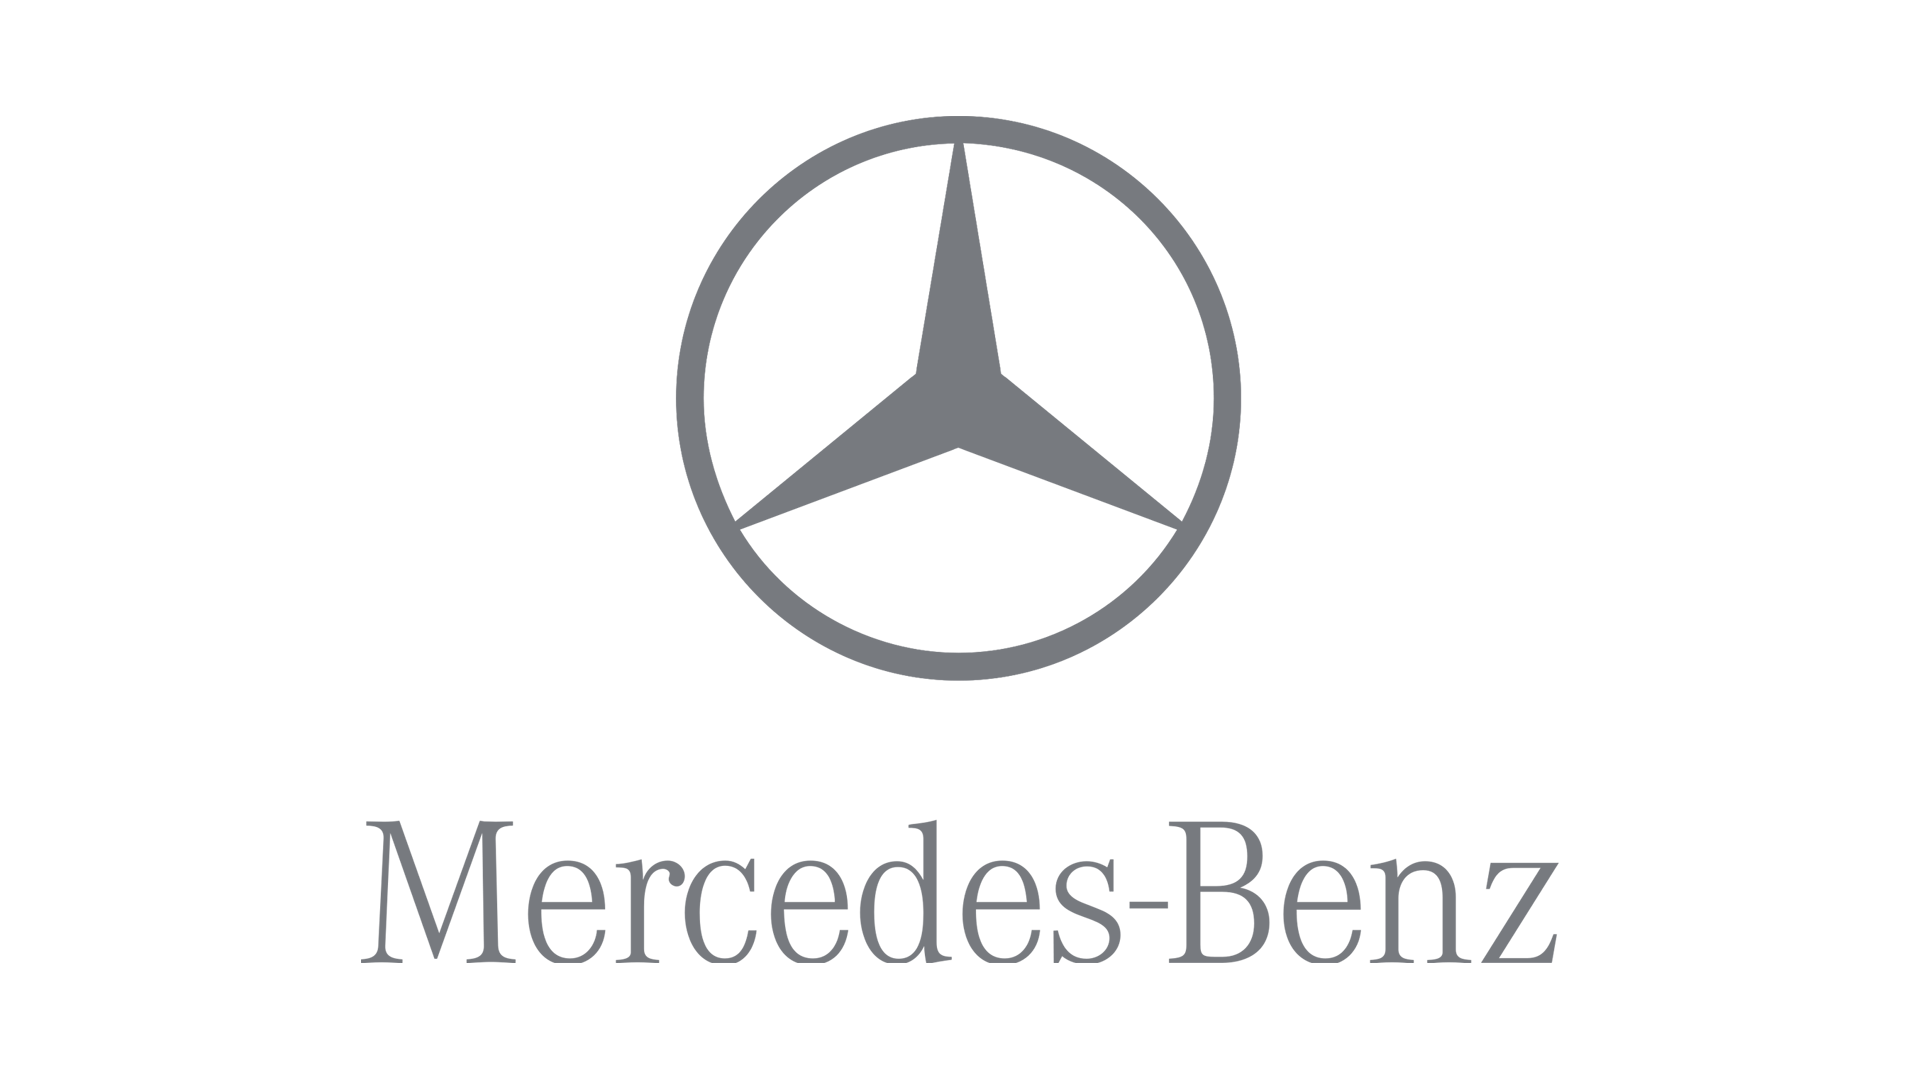 Mercedes logo png. Benz hd meaning information